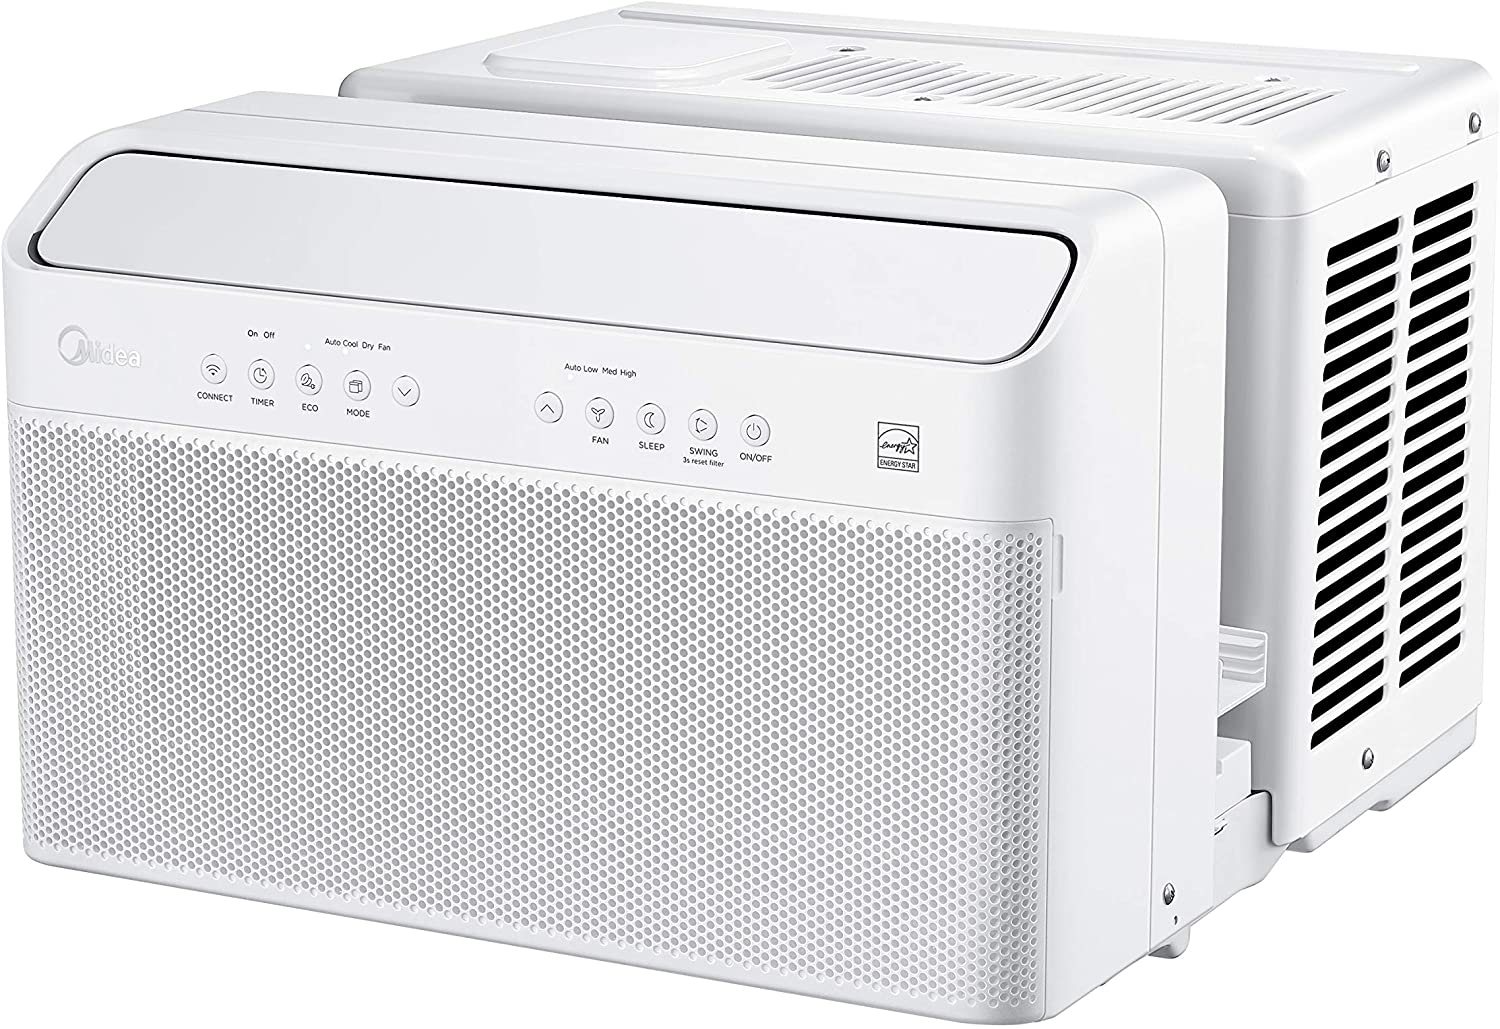 Midea U Inverter Window Air Conditioner 10,000BTU